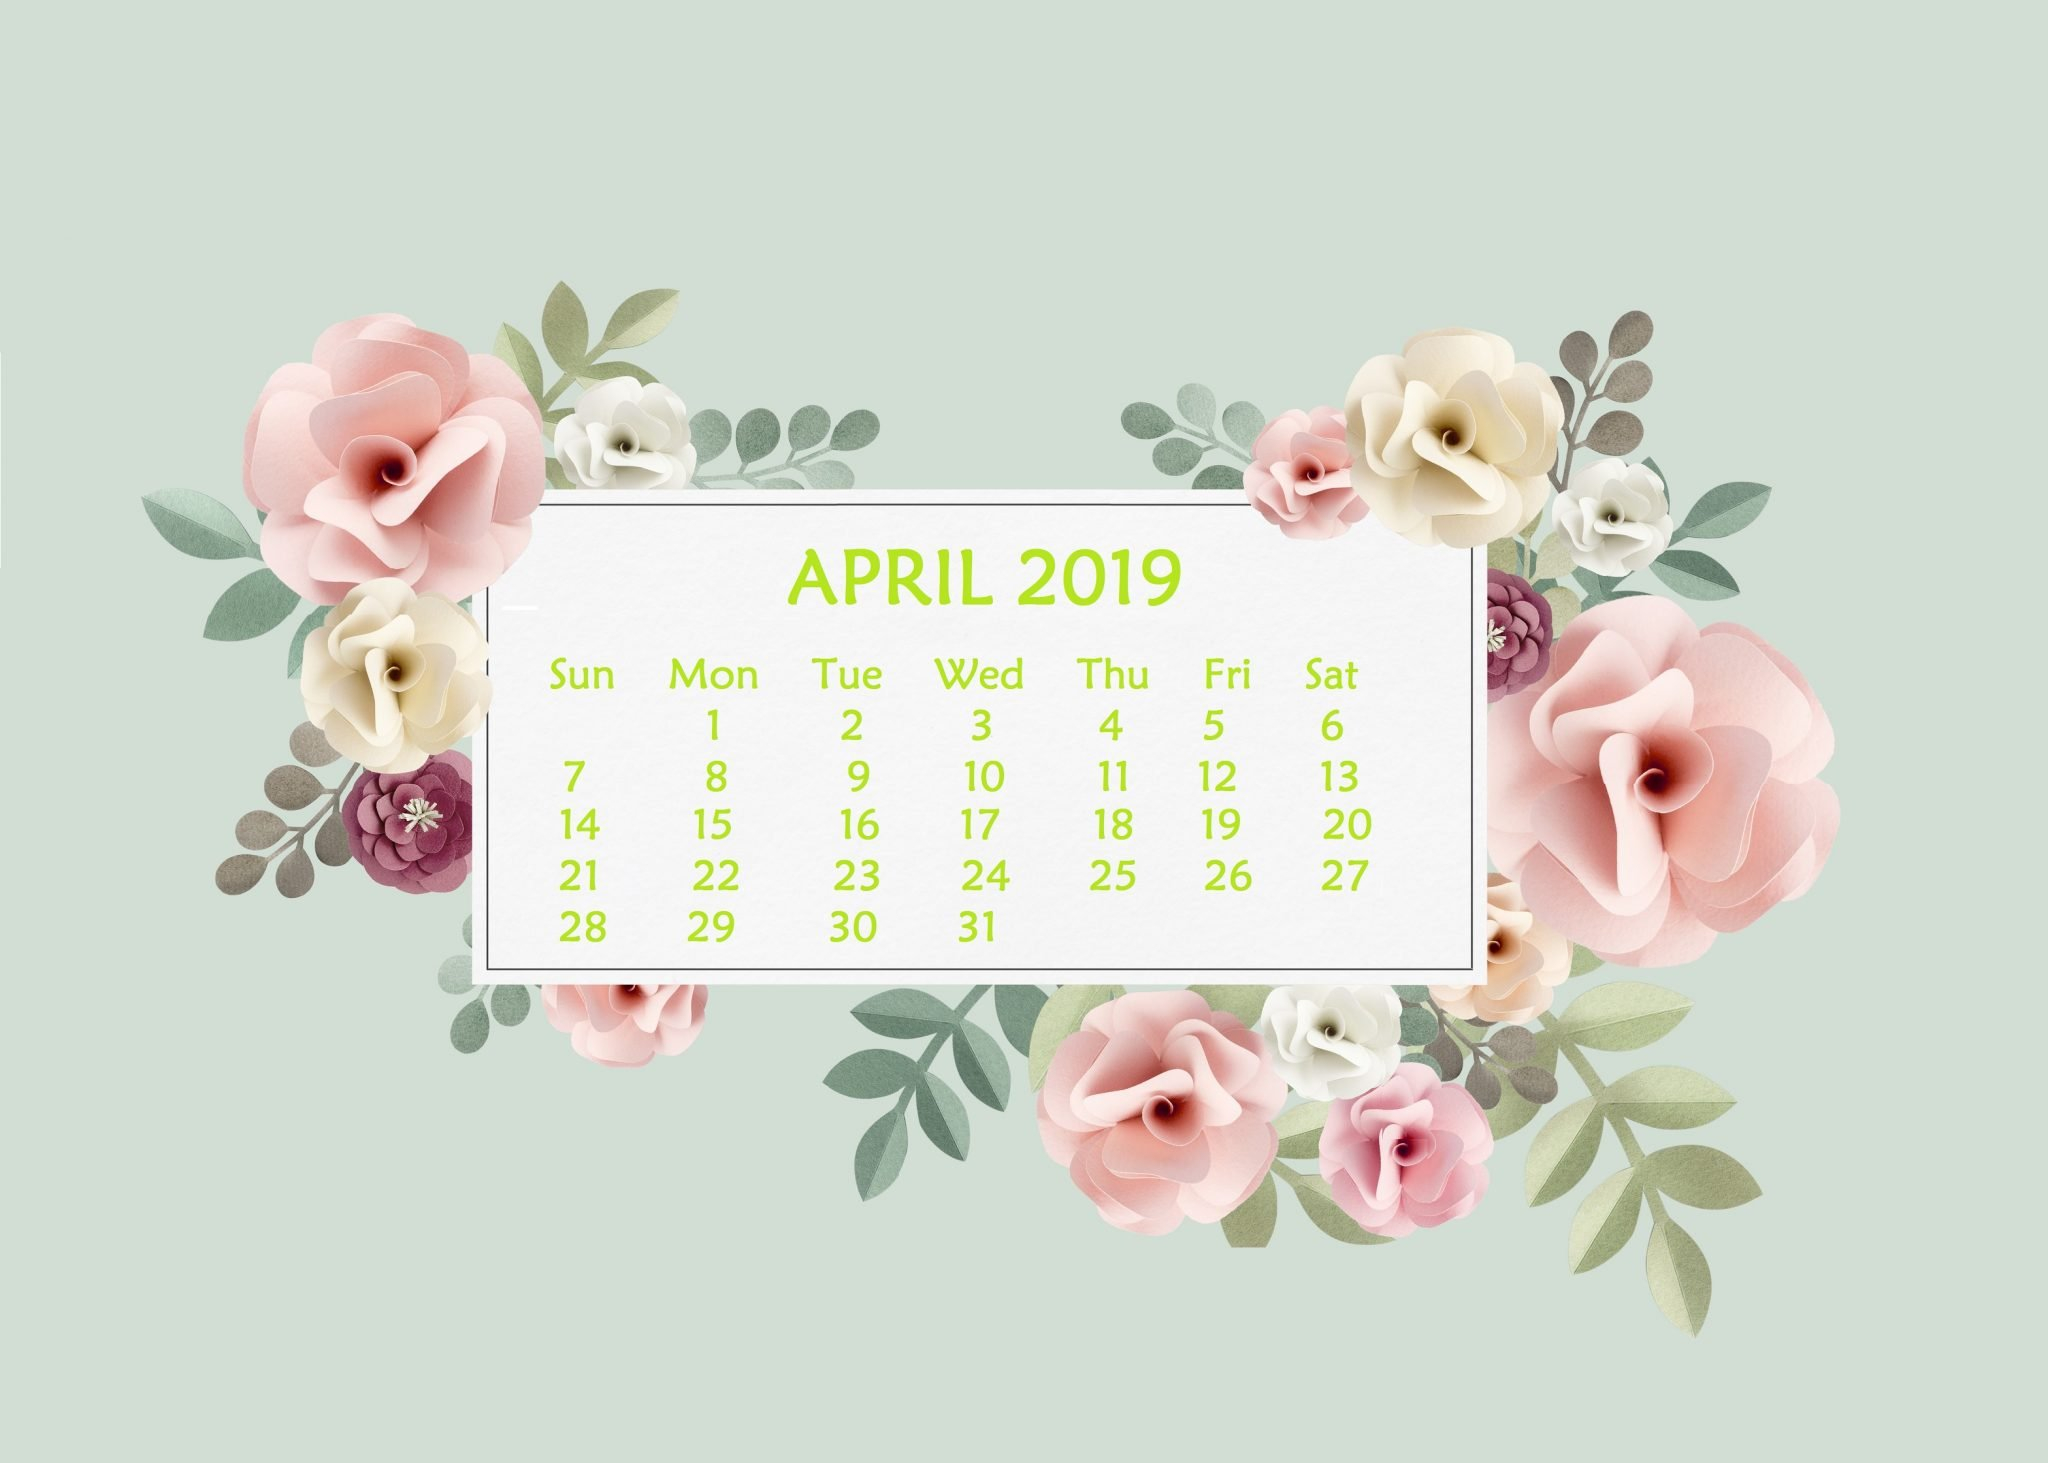 April 2019 Desktop Wallpaper With Calendar - April 2019 Calendar Calendar 2019 On Computer